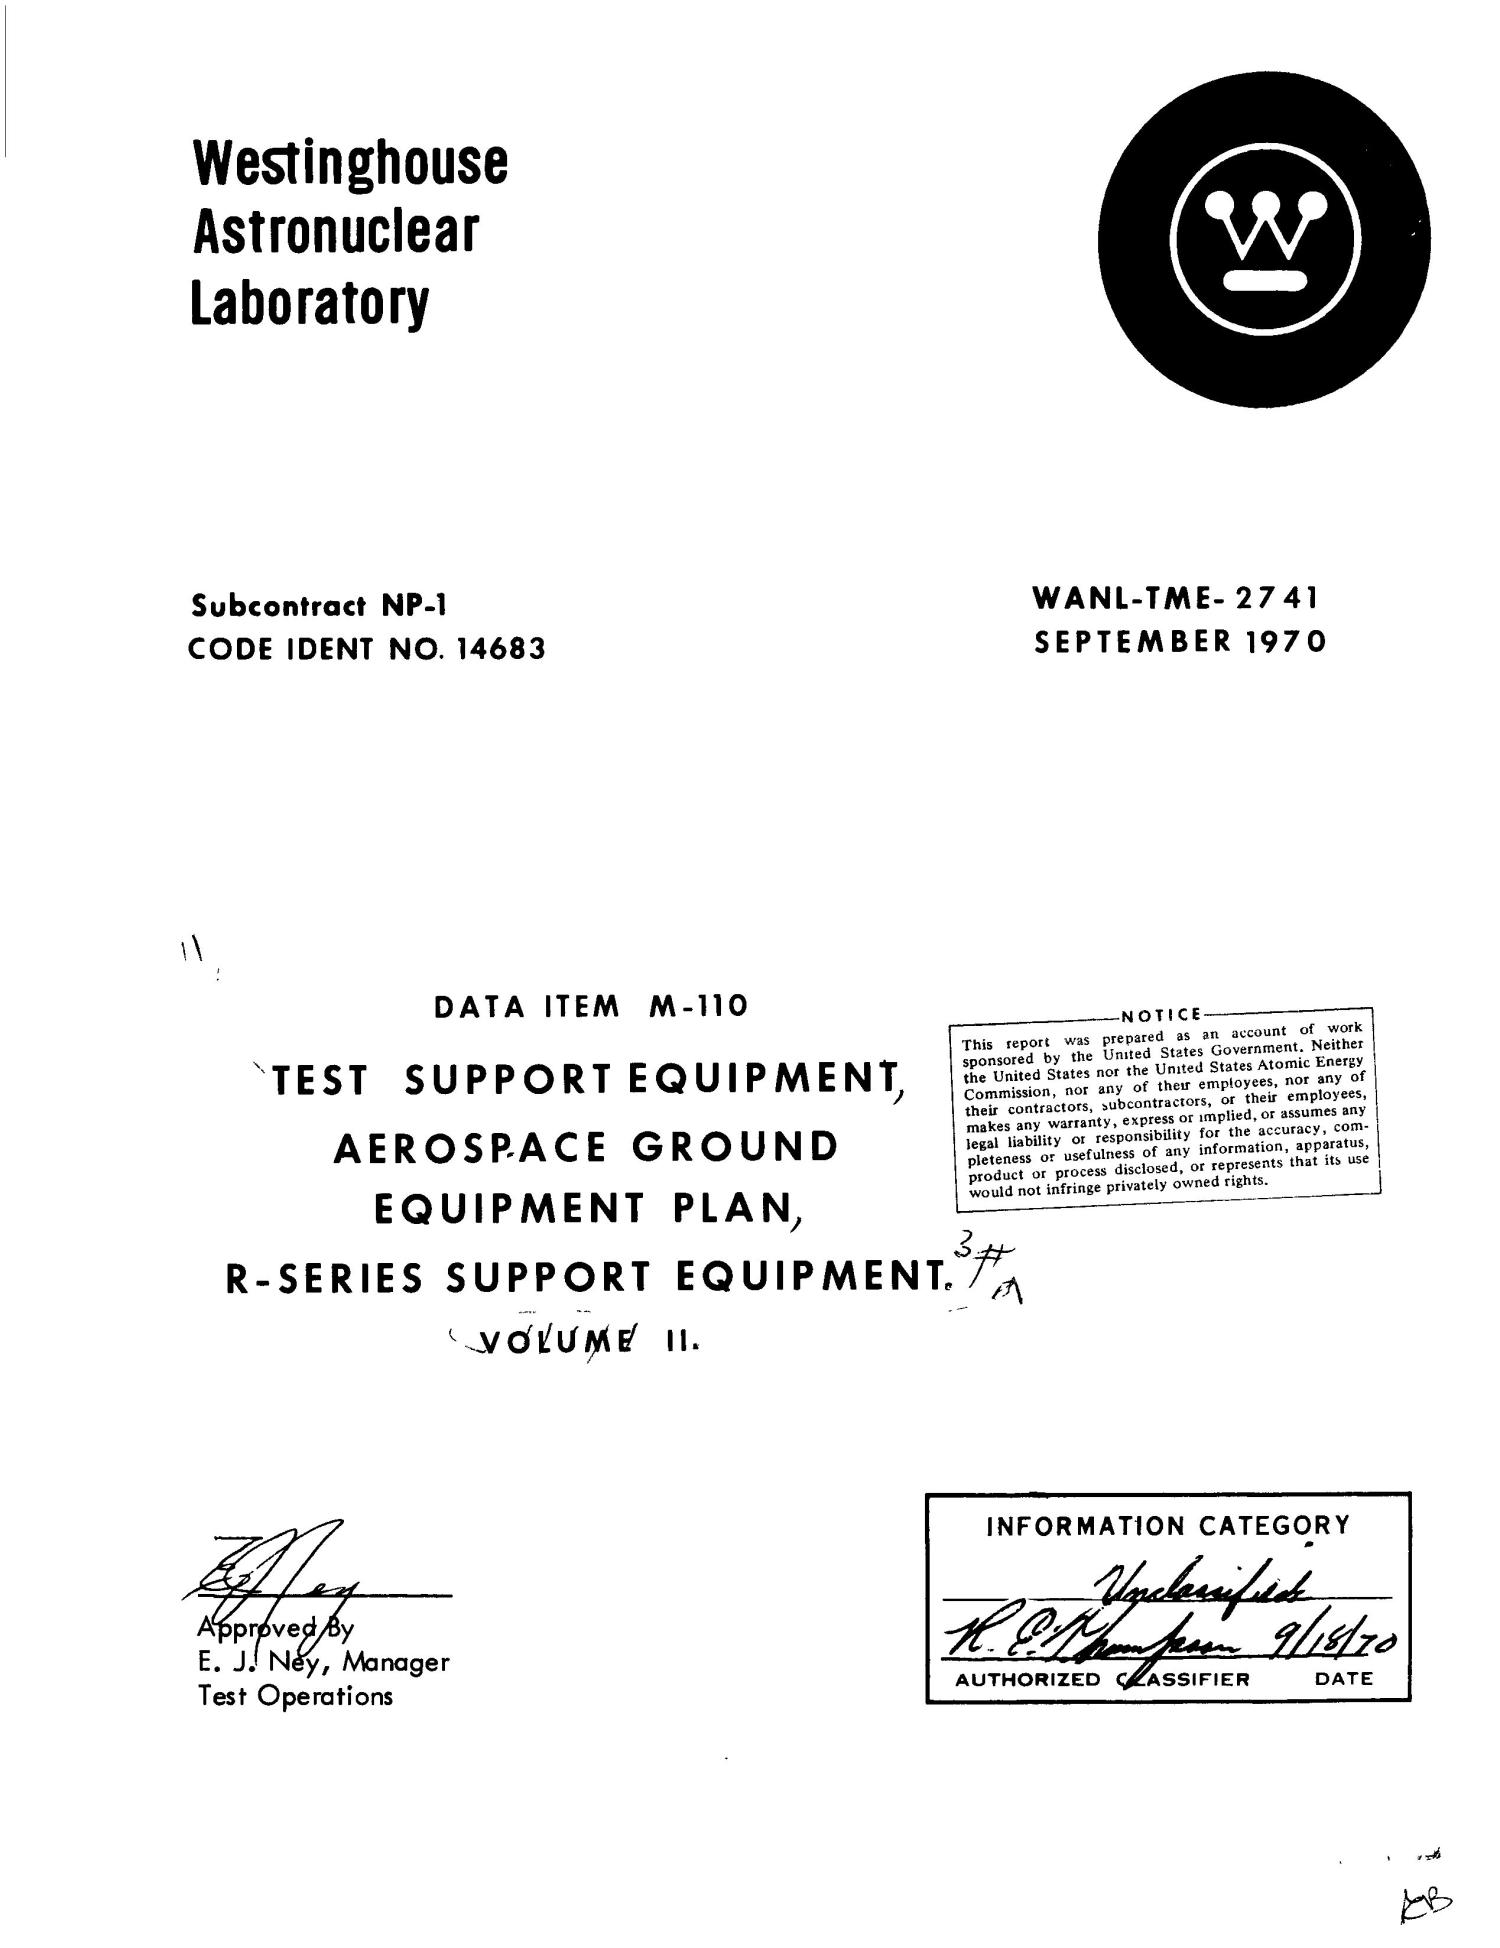 Test support equipment, aerospace ground equipment plan, r-series support equipment. Volume II                                                                                                      [Sequence #]: 4 of 178